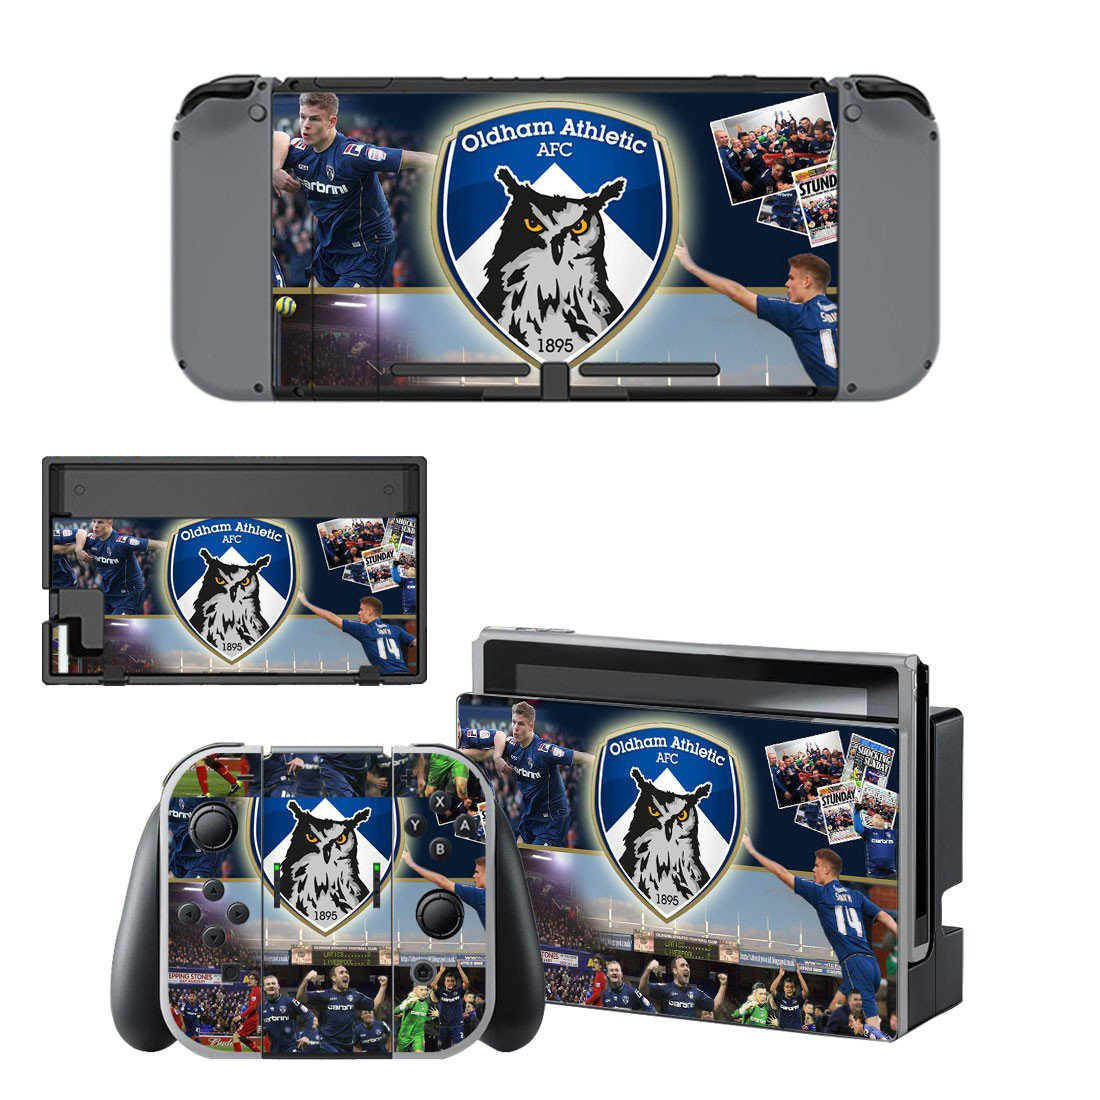 Oldham athletic AFC decal for Nintendo switch console sticker skin